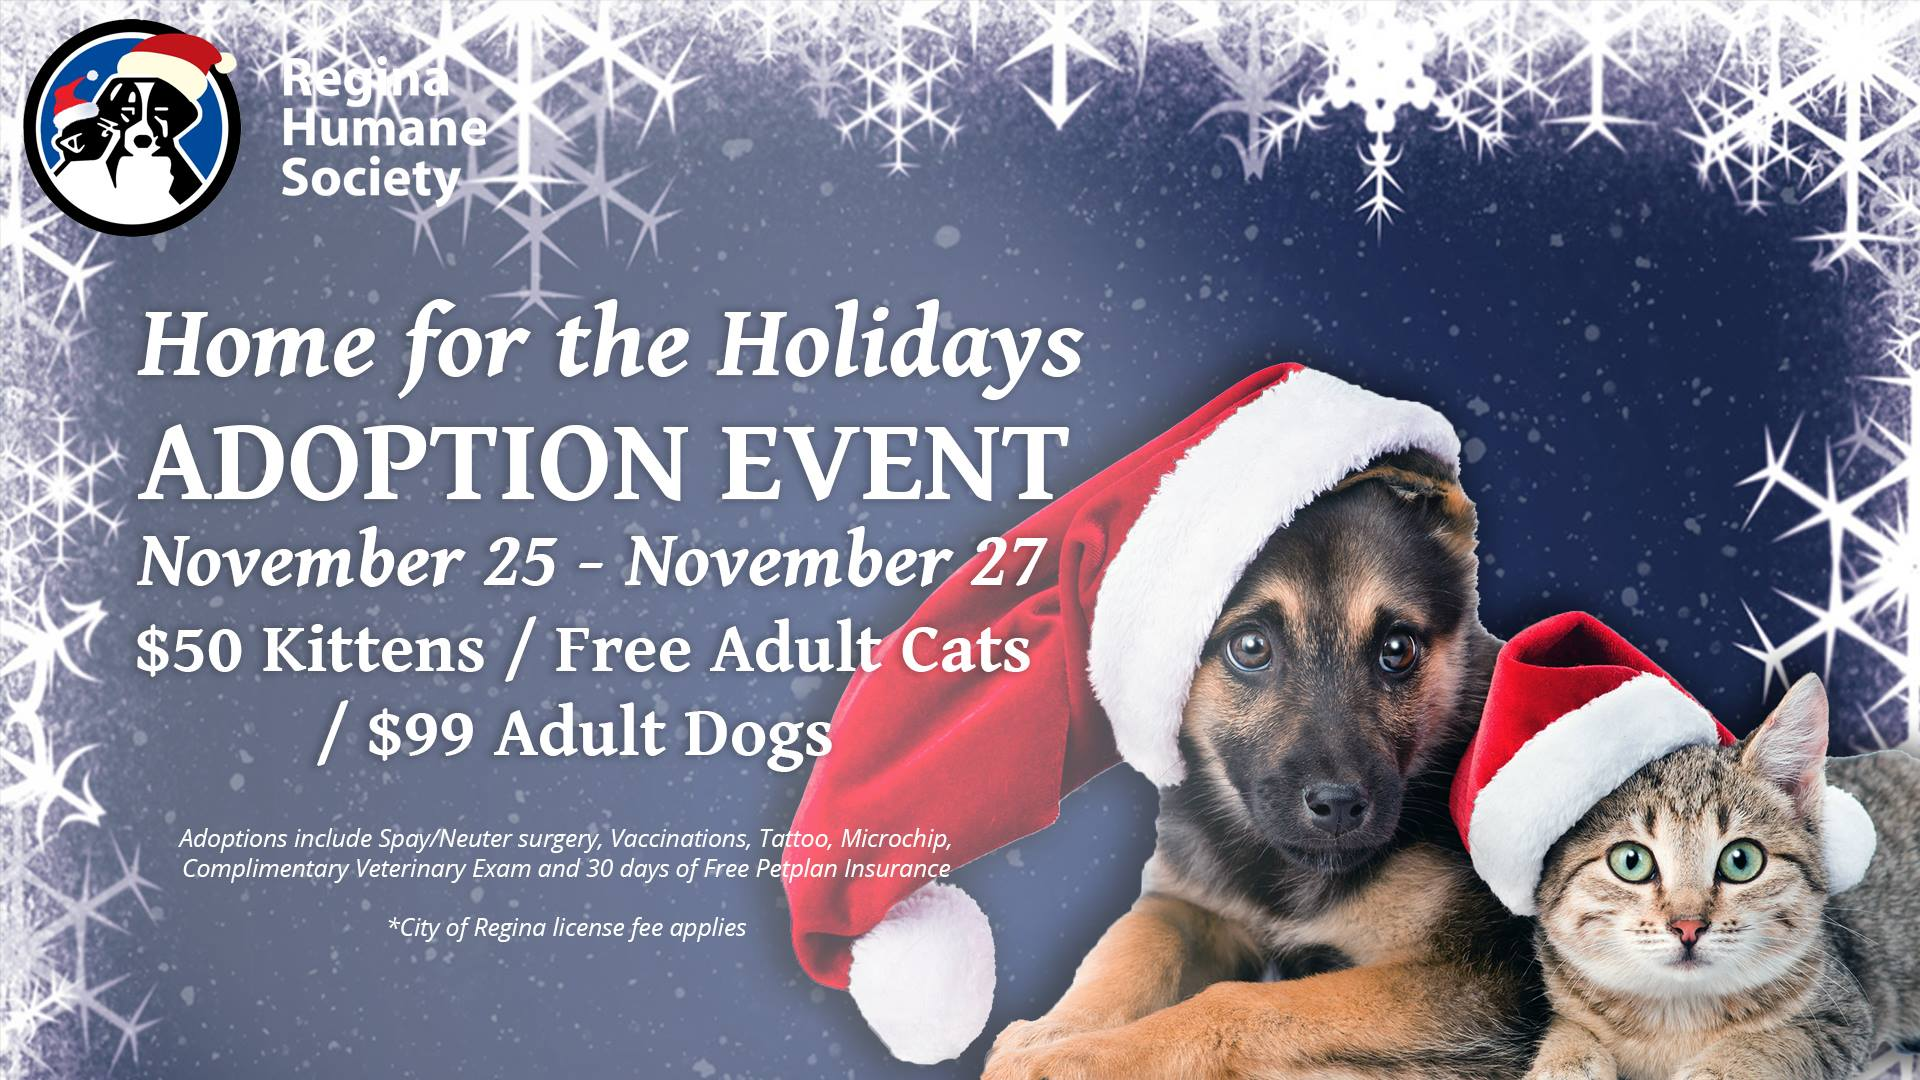 Regina Humane Society Home for the Holidays - November 25, 2016